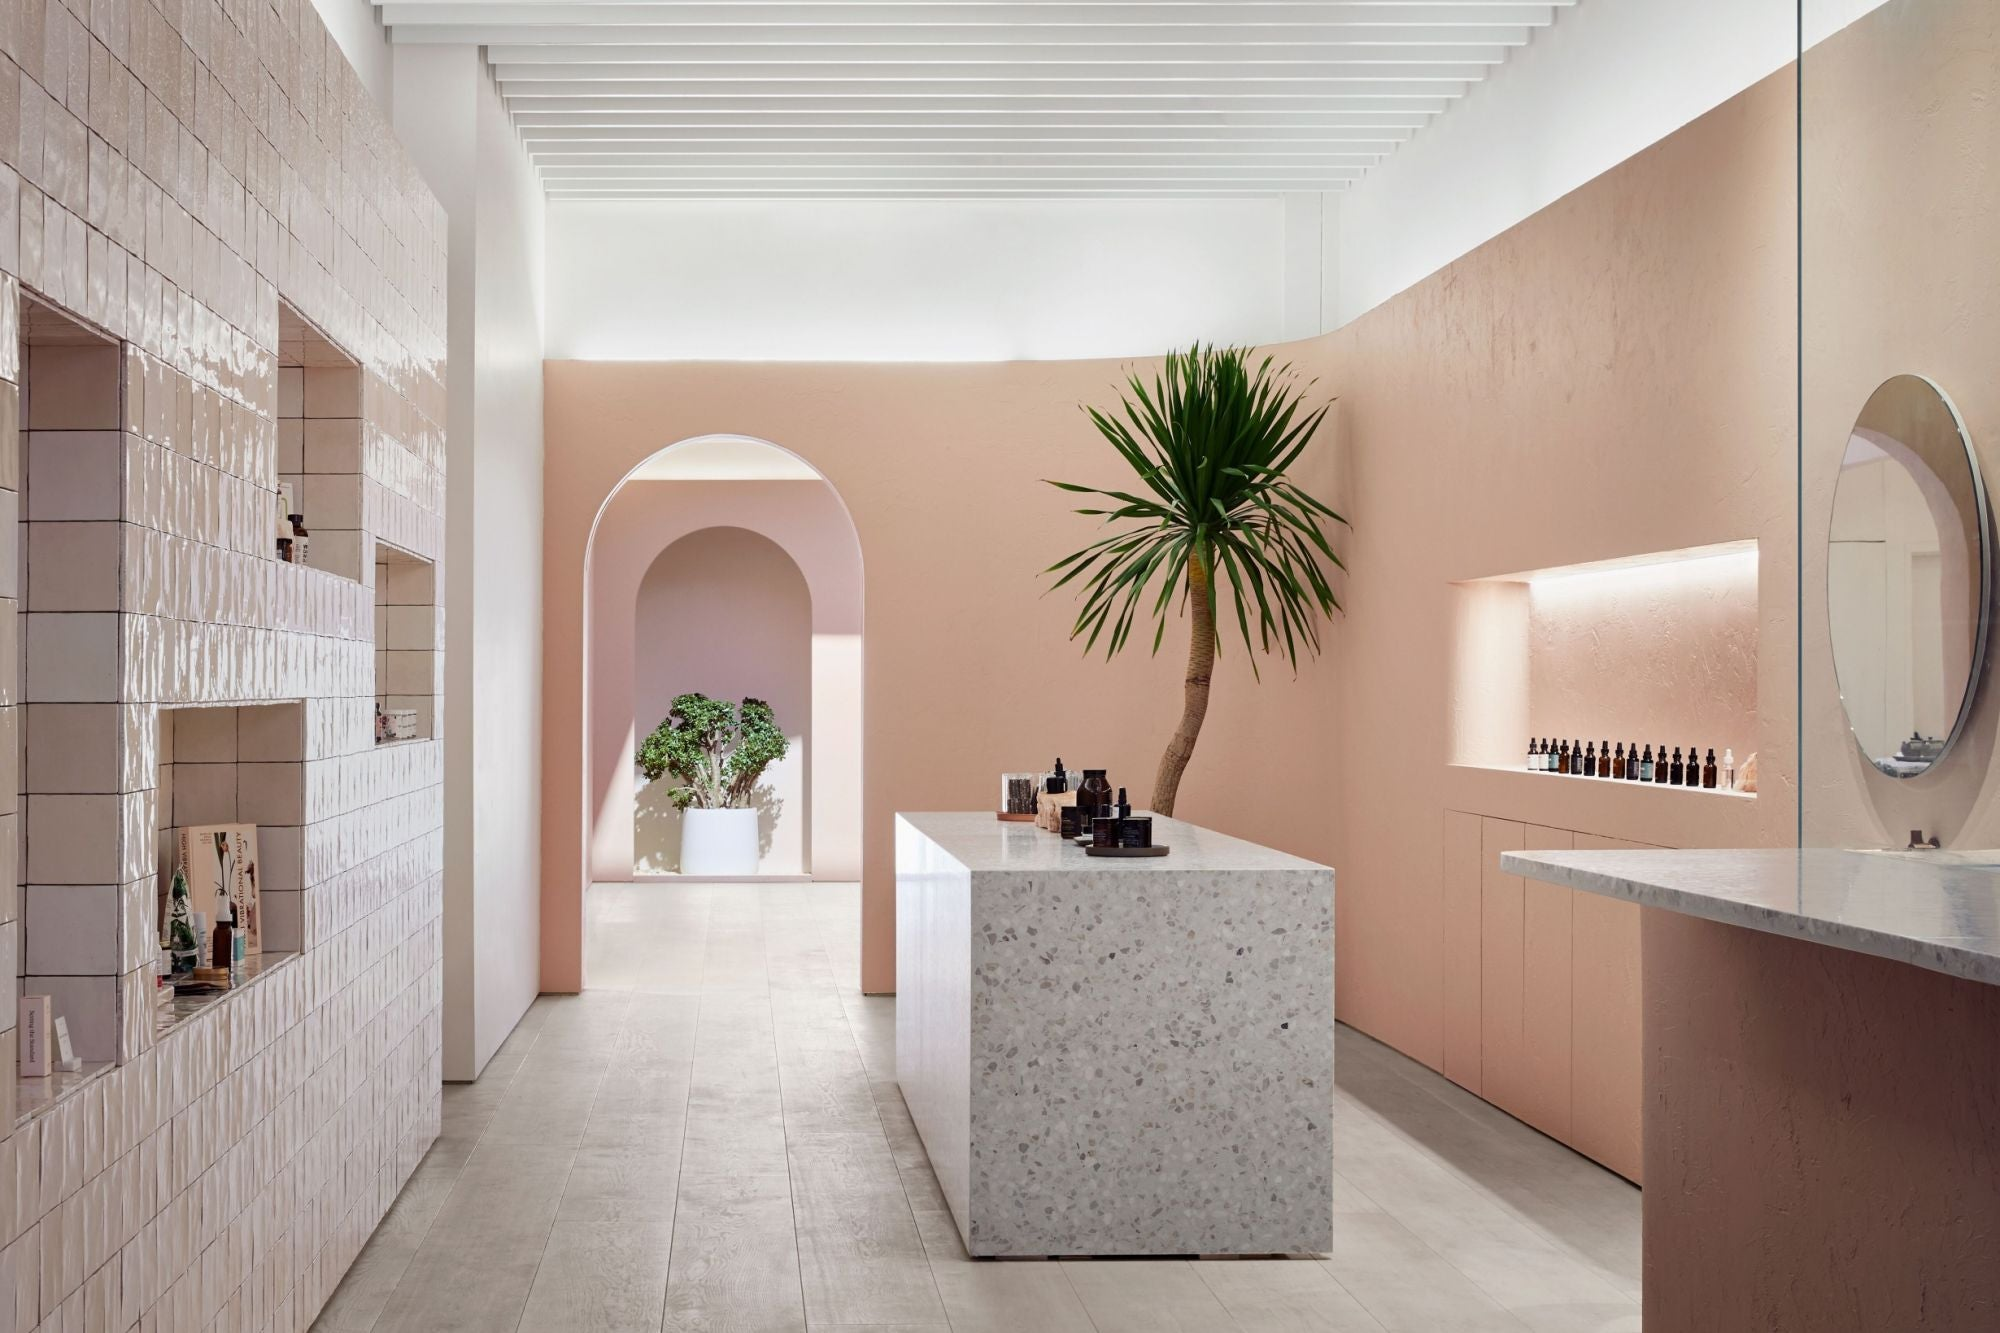 New York Spa Gives CBD the Upscale Treatment